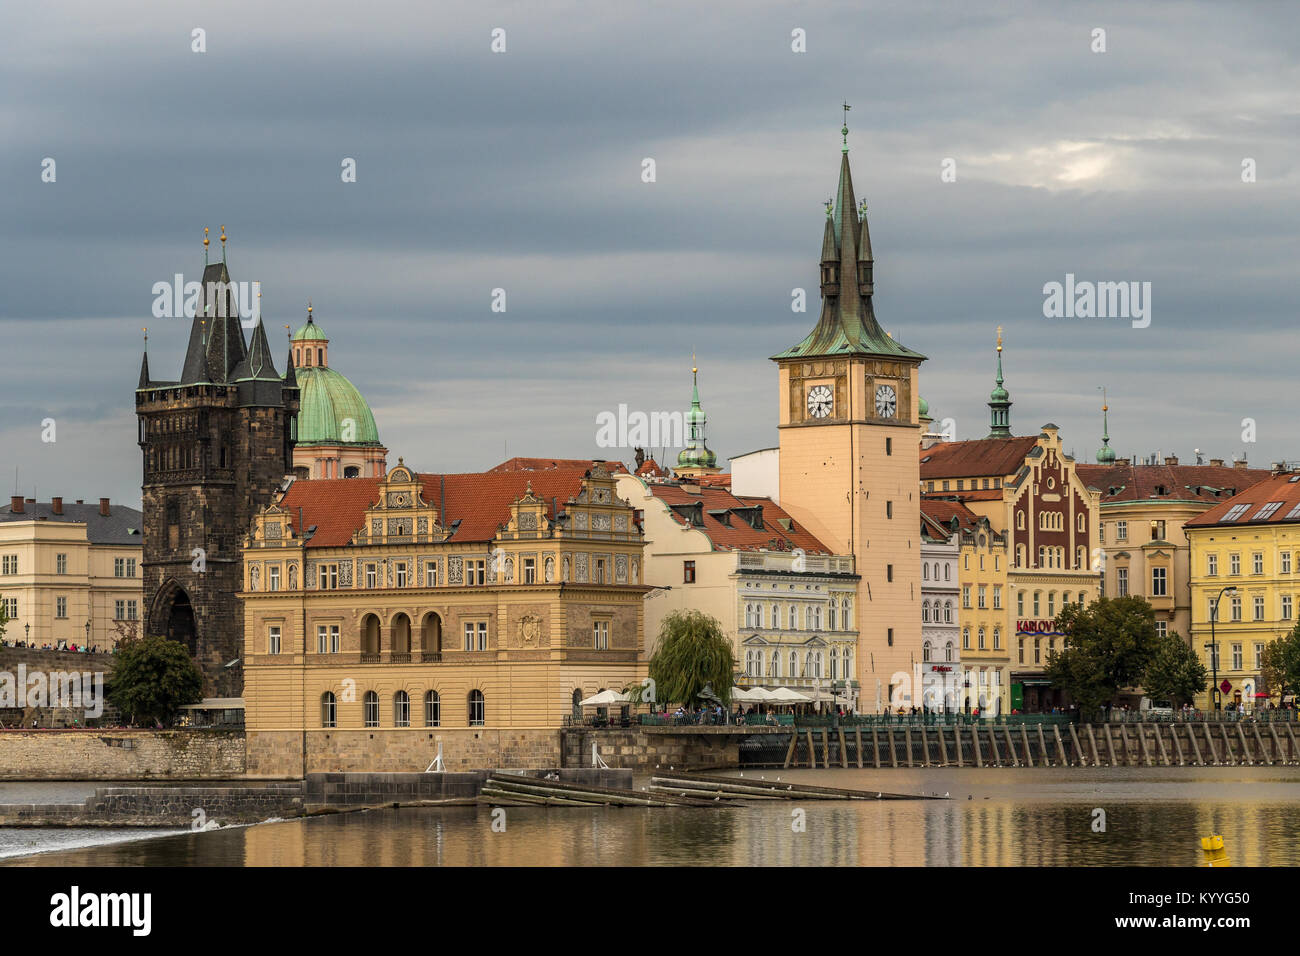 Prague from the Banks of the River Vltava with Old Town Bridge Tower at the entrance to The Charles Bridge - Stock Image